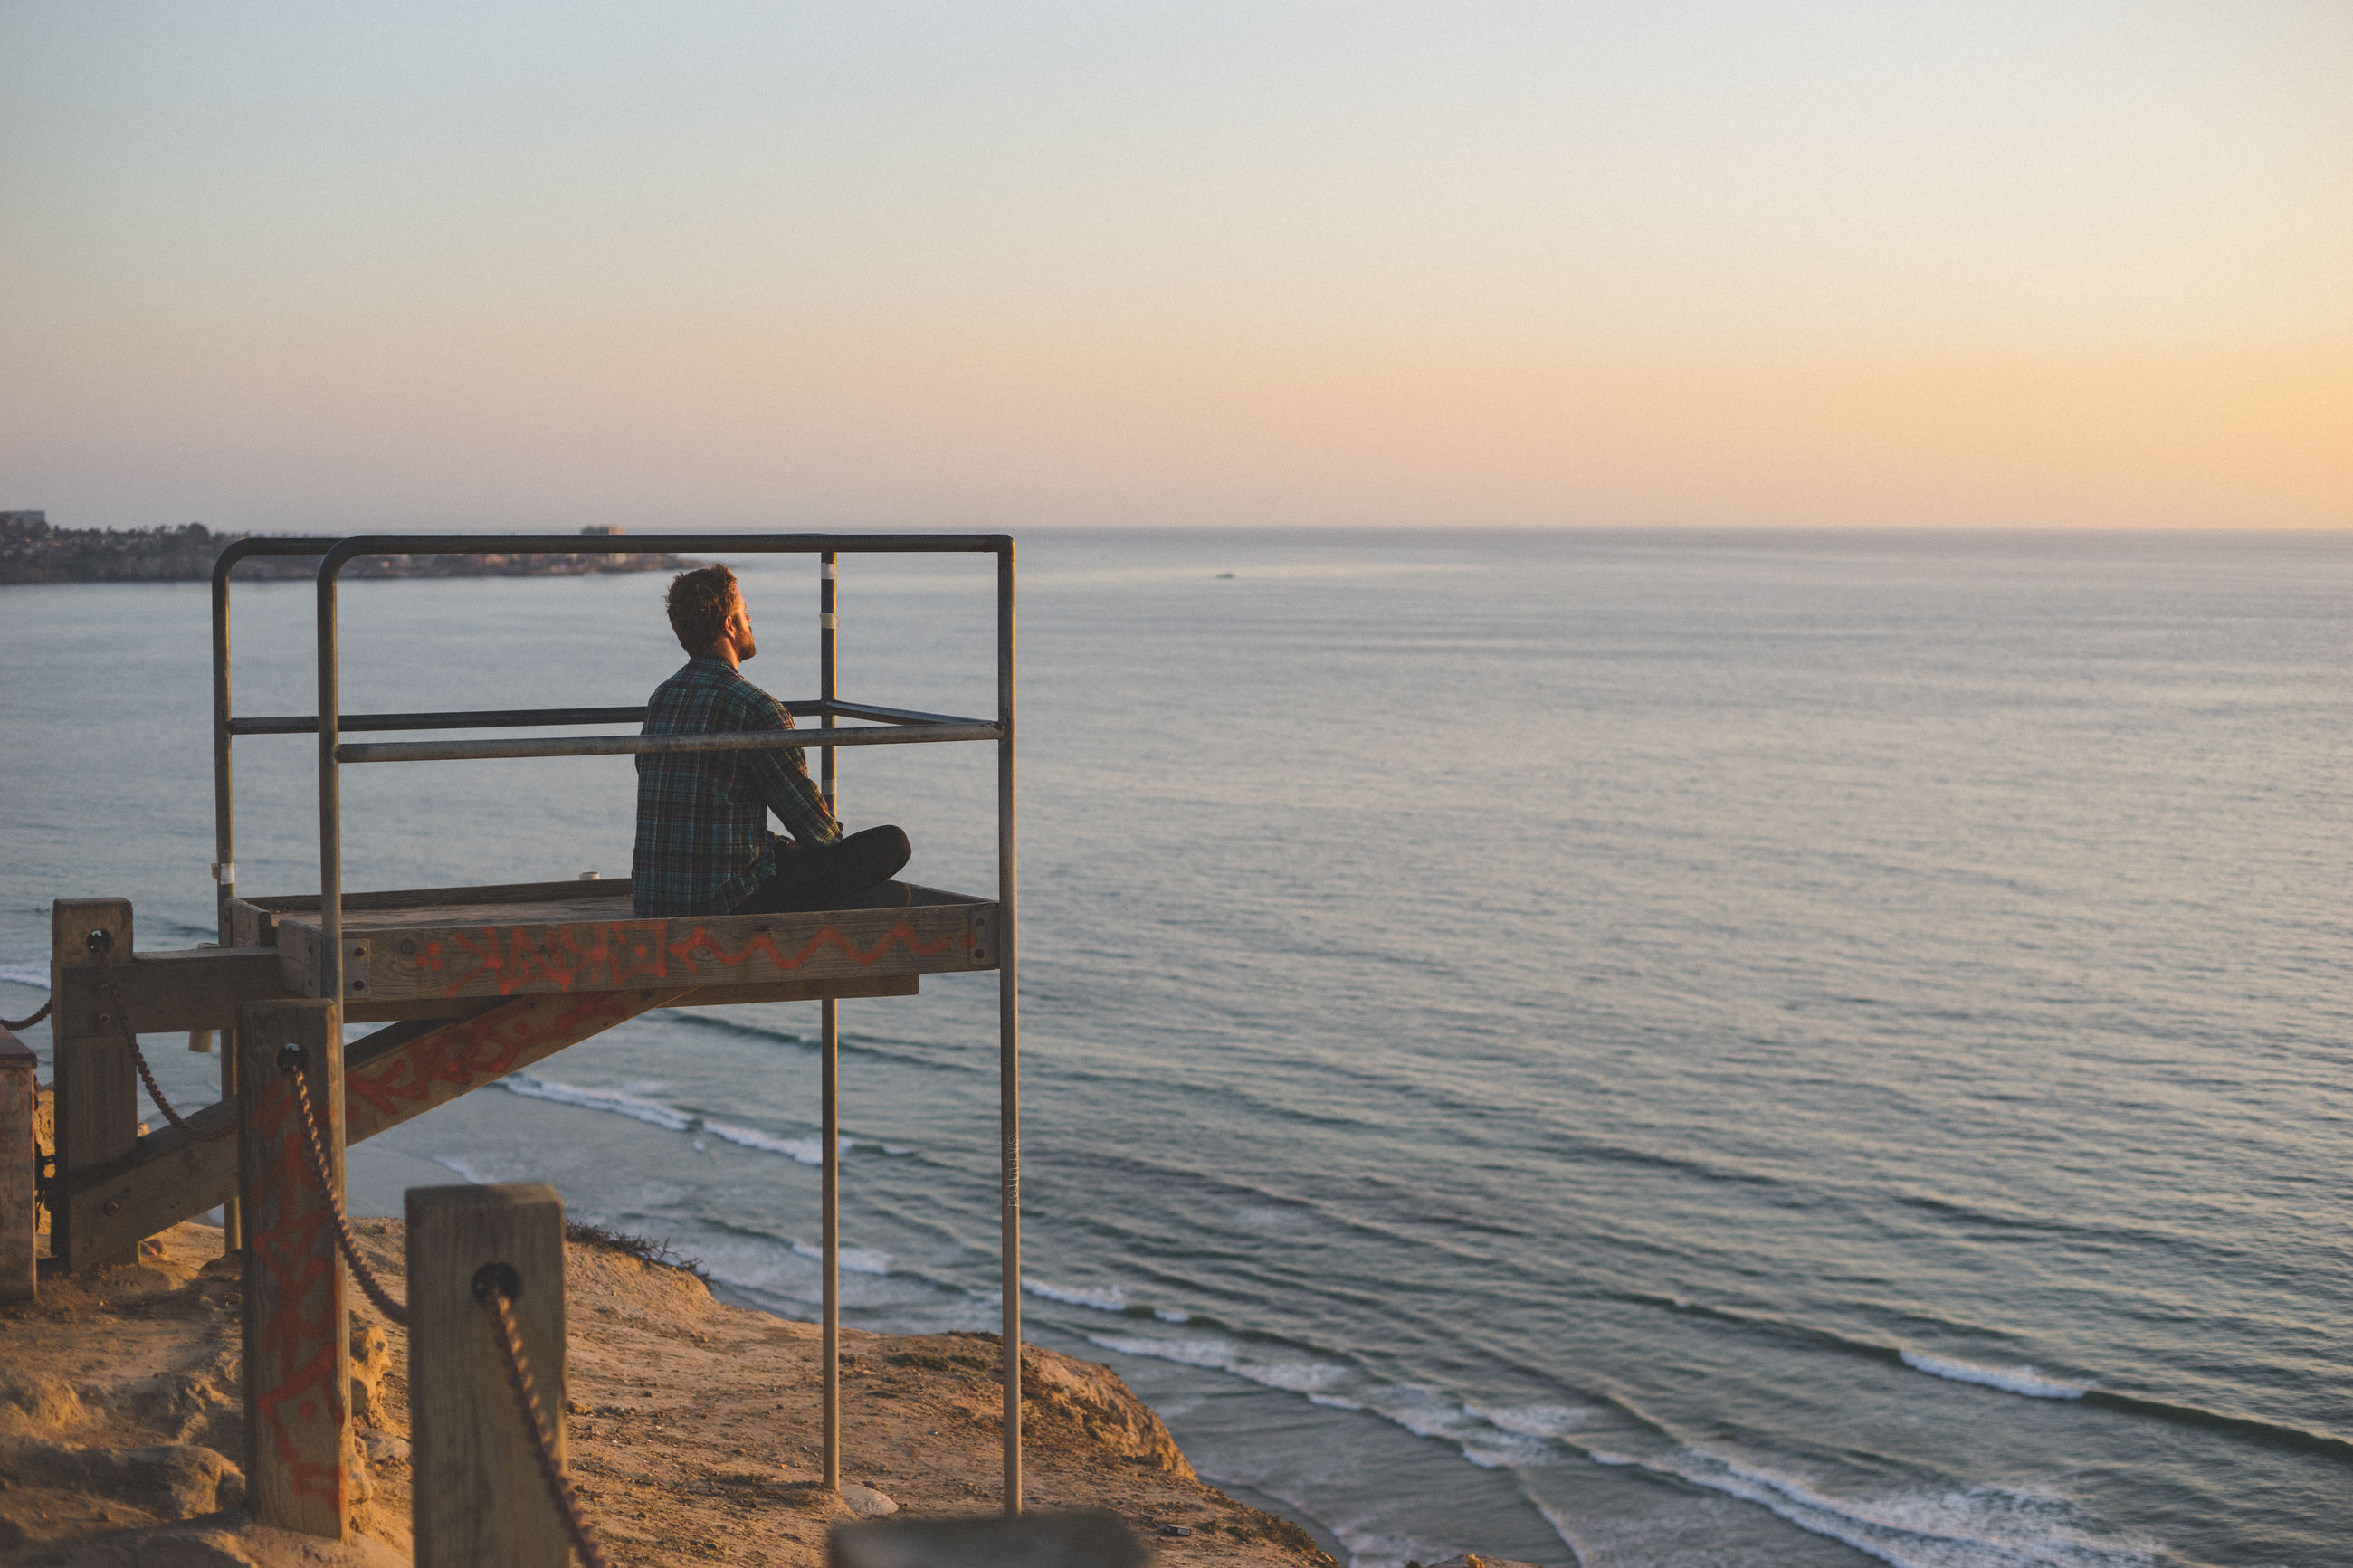 MAN FISHING AT SEA SHORE AGAINST CLEAR SKY